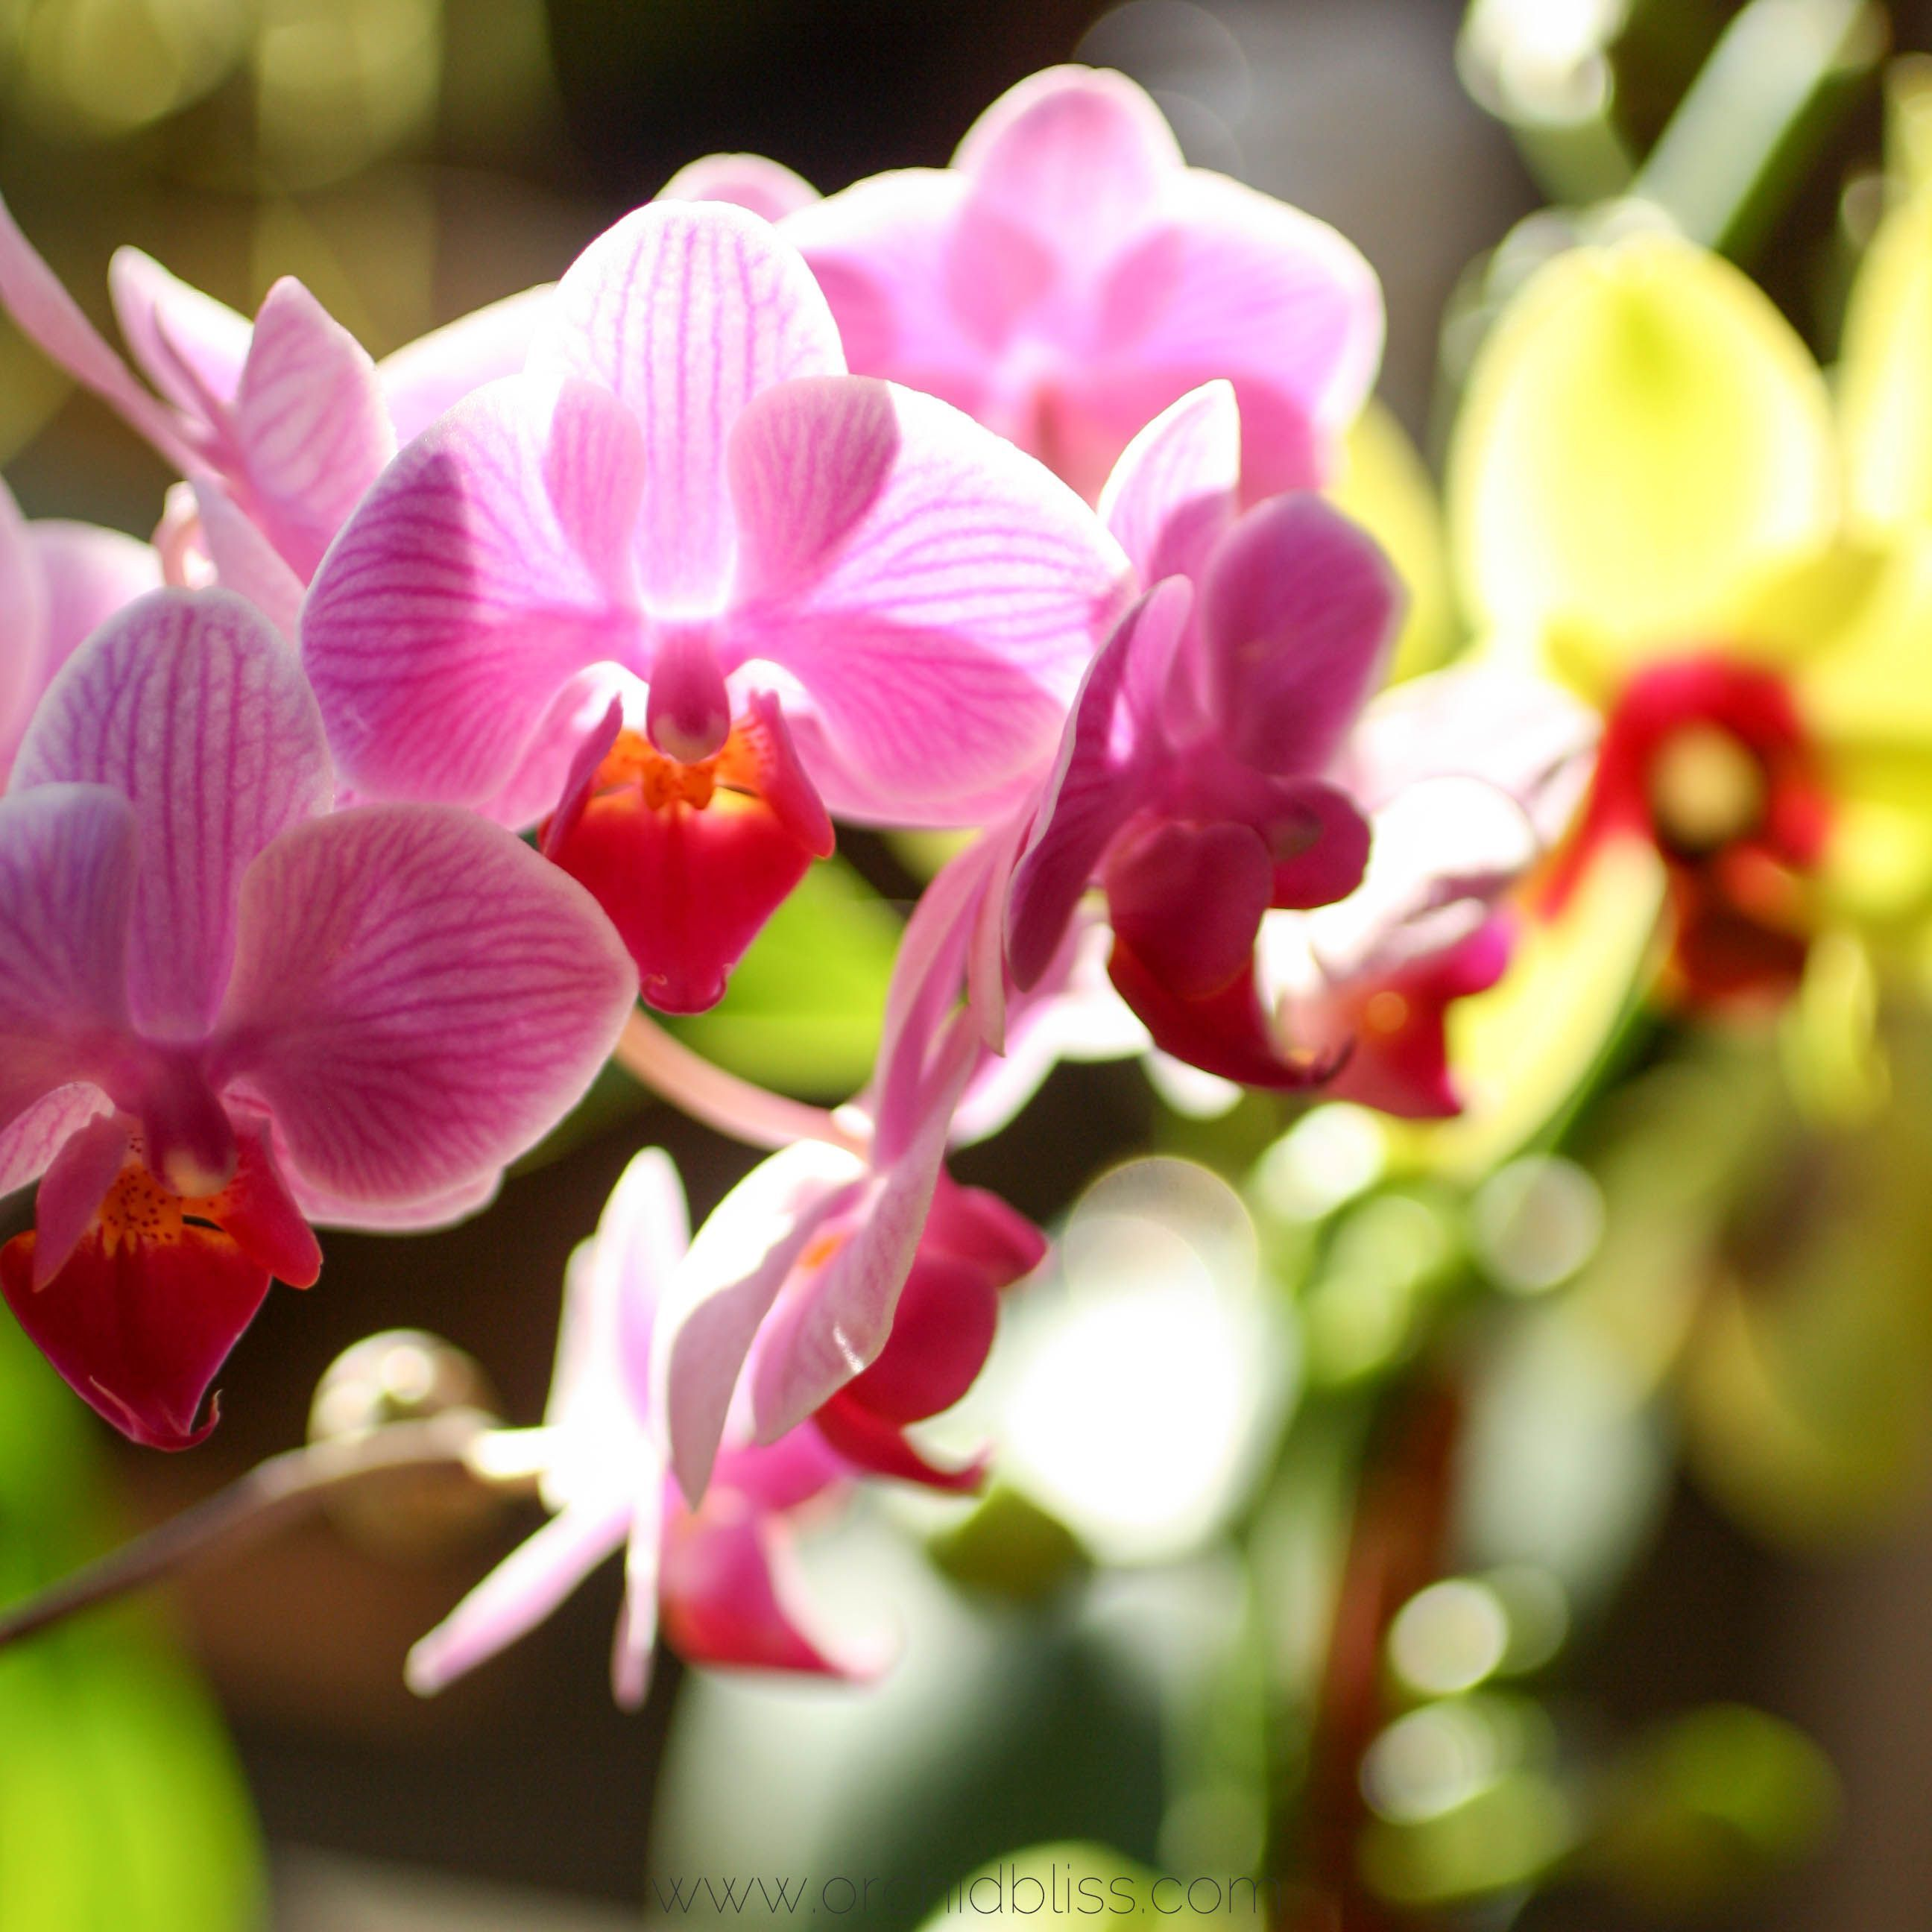 Having trouble reblooming your orchid perhaps your orchid needs